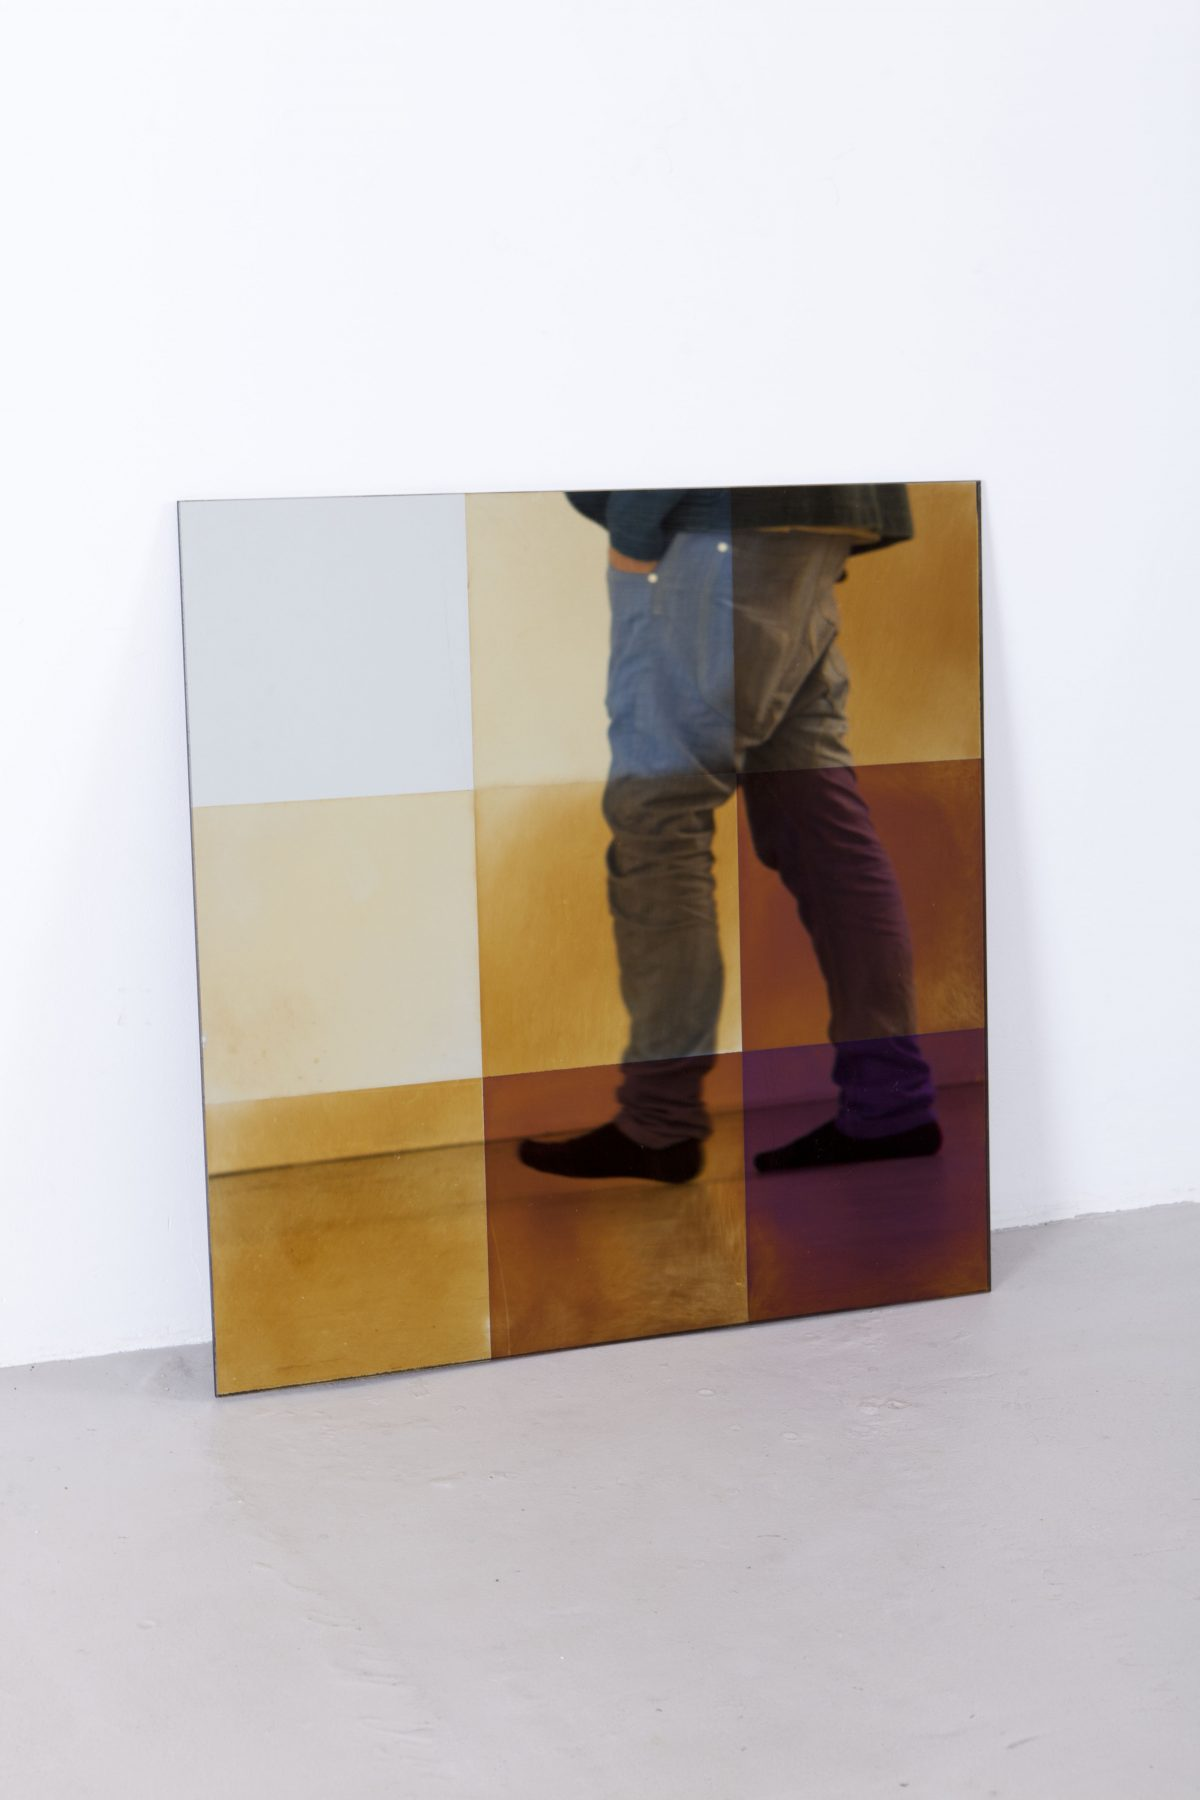 Transnatural Transience mirror square + feet design Pott & Derksen photo floor knaapen